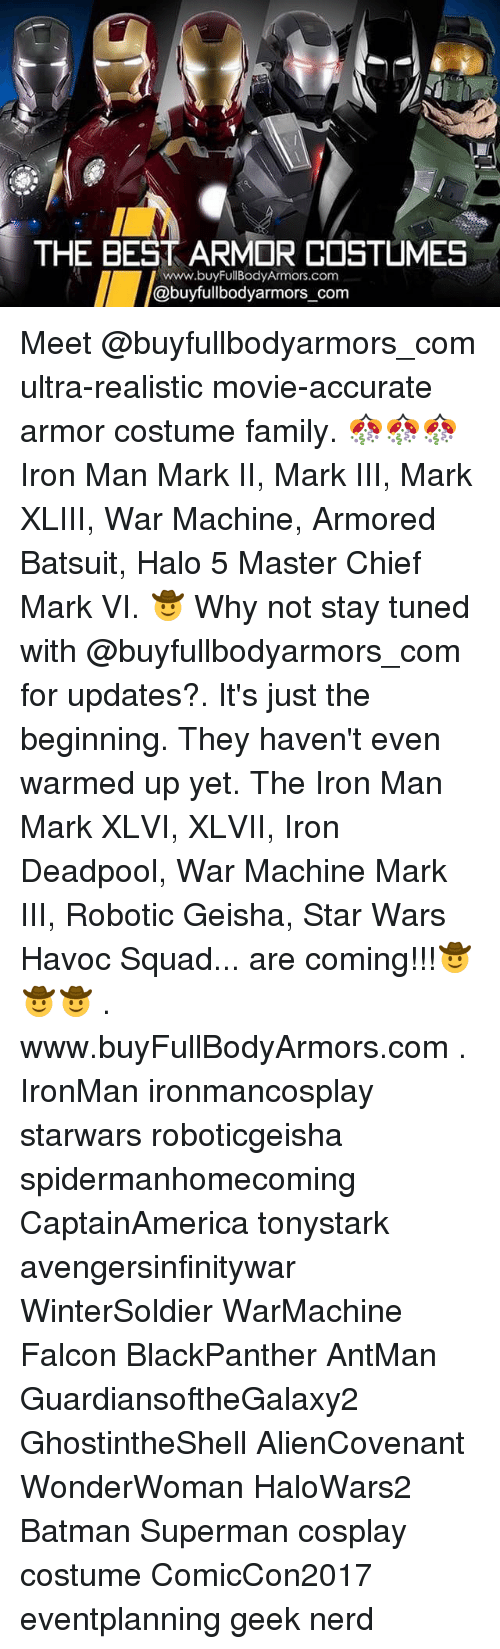 falcone: THE BEST ARMOR COSTLIMES  www.buyFullBodyArmors.com  @buyfullbodyarmors_com Meet @buyfullbodyarmors_com ultra-realistic movie-accurate armor costume family. 🎊🎊🎊Iron Man Mark II, Mark III, Mark XLIII, War Machine, Armored Batsuit, Halo 5 Master Chief Mark VI. 🤠 Why not stay tuned with @buyfullbodyarmors_com for updates?. It's just the beginning. They haven't even warmed up yet. The Iron Man Mark XLVI, XLVII, Iron Deadpool, War Machine Mark III, Robotic Geisha, Star Wars Havoc Squad... are coming!!!🤠🤠🤠 . www.buyFullBodyArmors.com . IronMan ironmancosplay starwars roboticgeisha spidermanhomecoming CaptainAmerica tonystark avengersinfinitywar WinterSoldier WarMachine Falcon BlackPanther AntMan GuardiansoftheGalaxy2 GhostintheShell AlienCovenant WonderWoman HaloWars2 Batman Superman cosplay costume ComicCon2017 eventplanning geek nerd